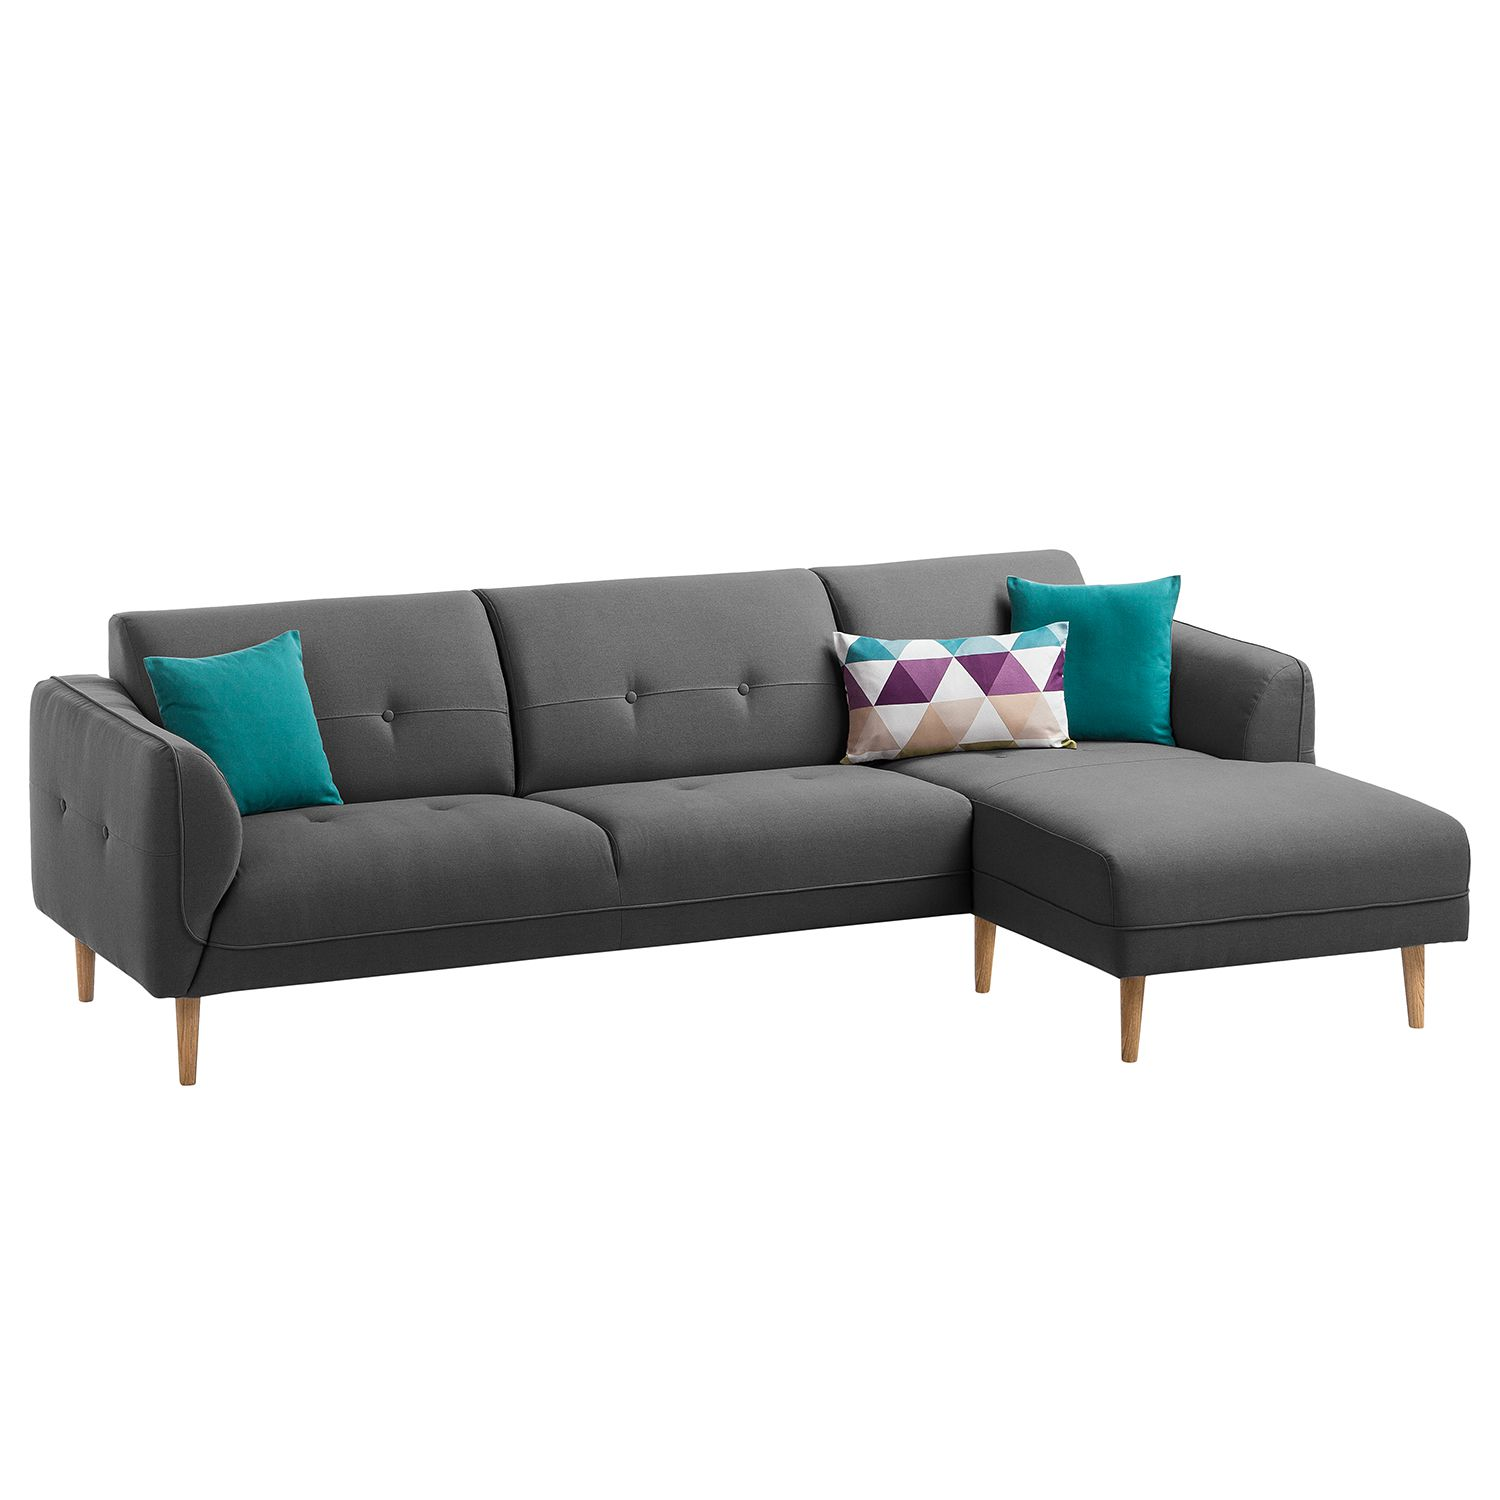 Longchair Couch Stunning Longchair Couch With Longchair Couch